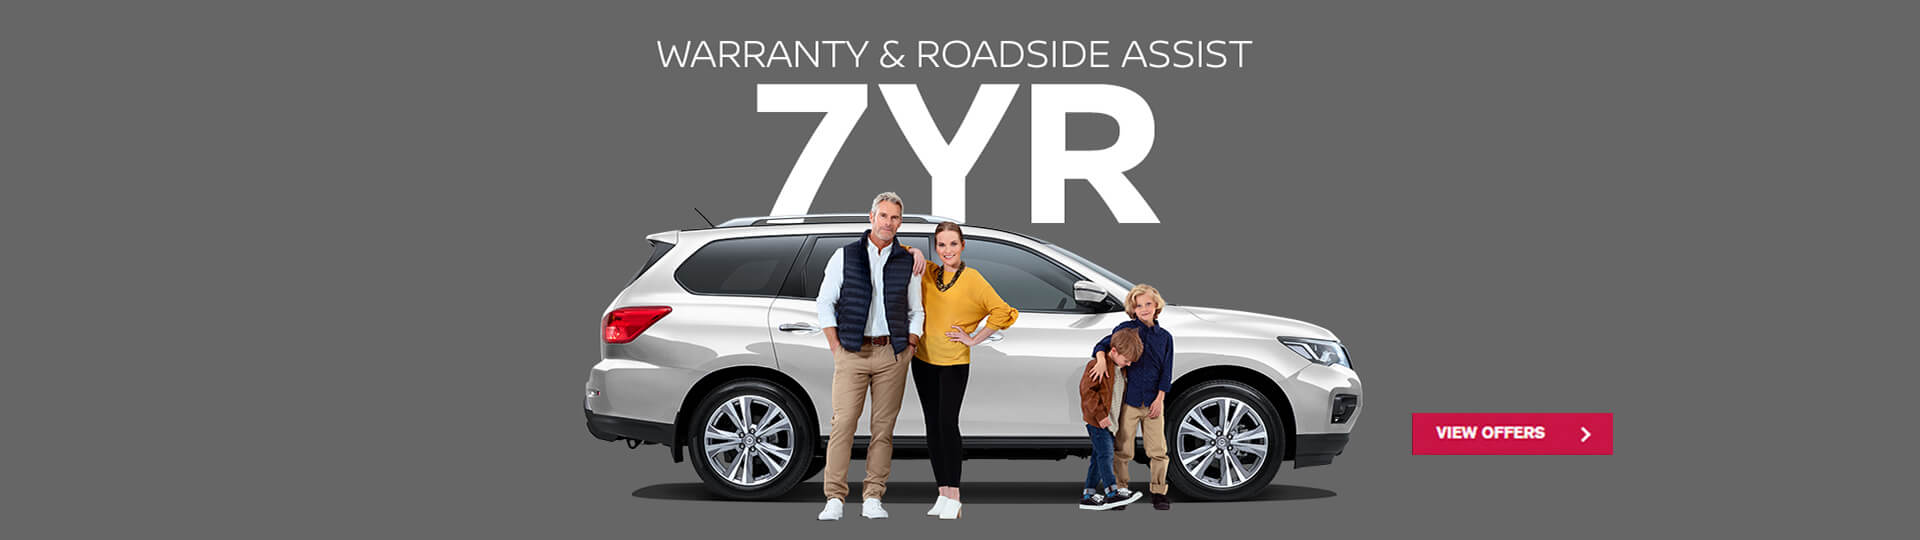 Nissan Pathfinder - 7 Year Warranty and Roadside Assist on selected models